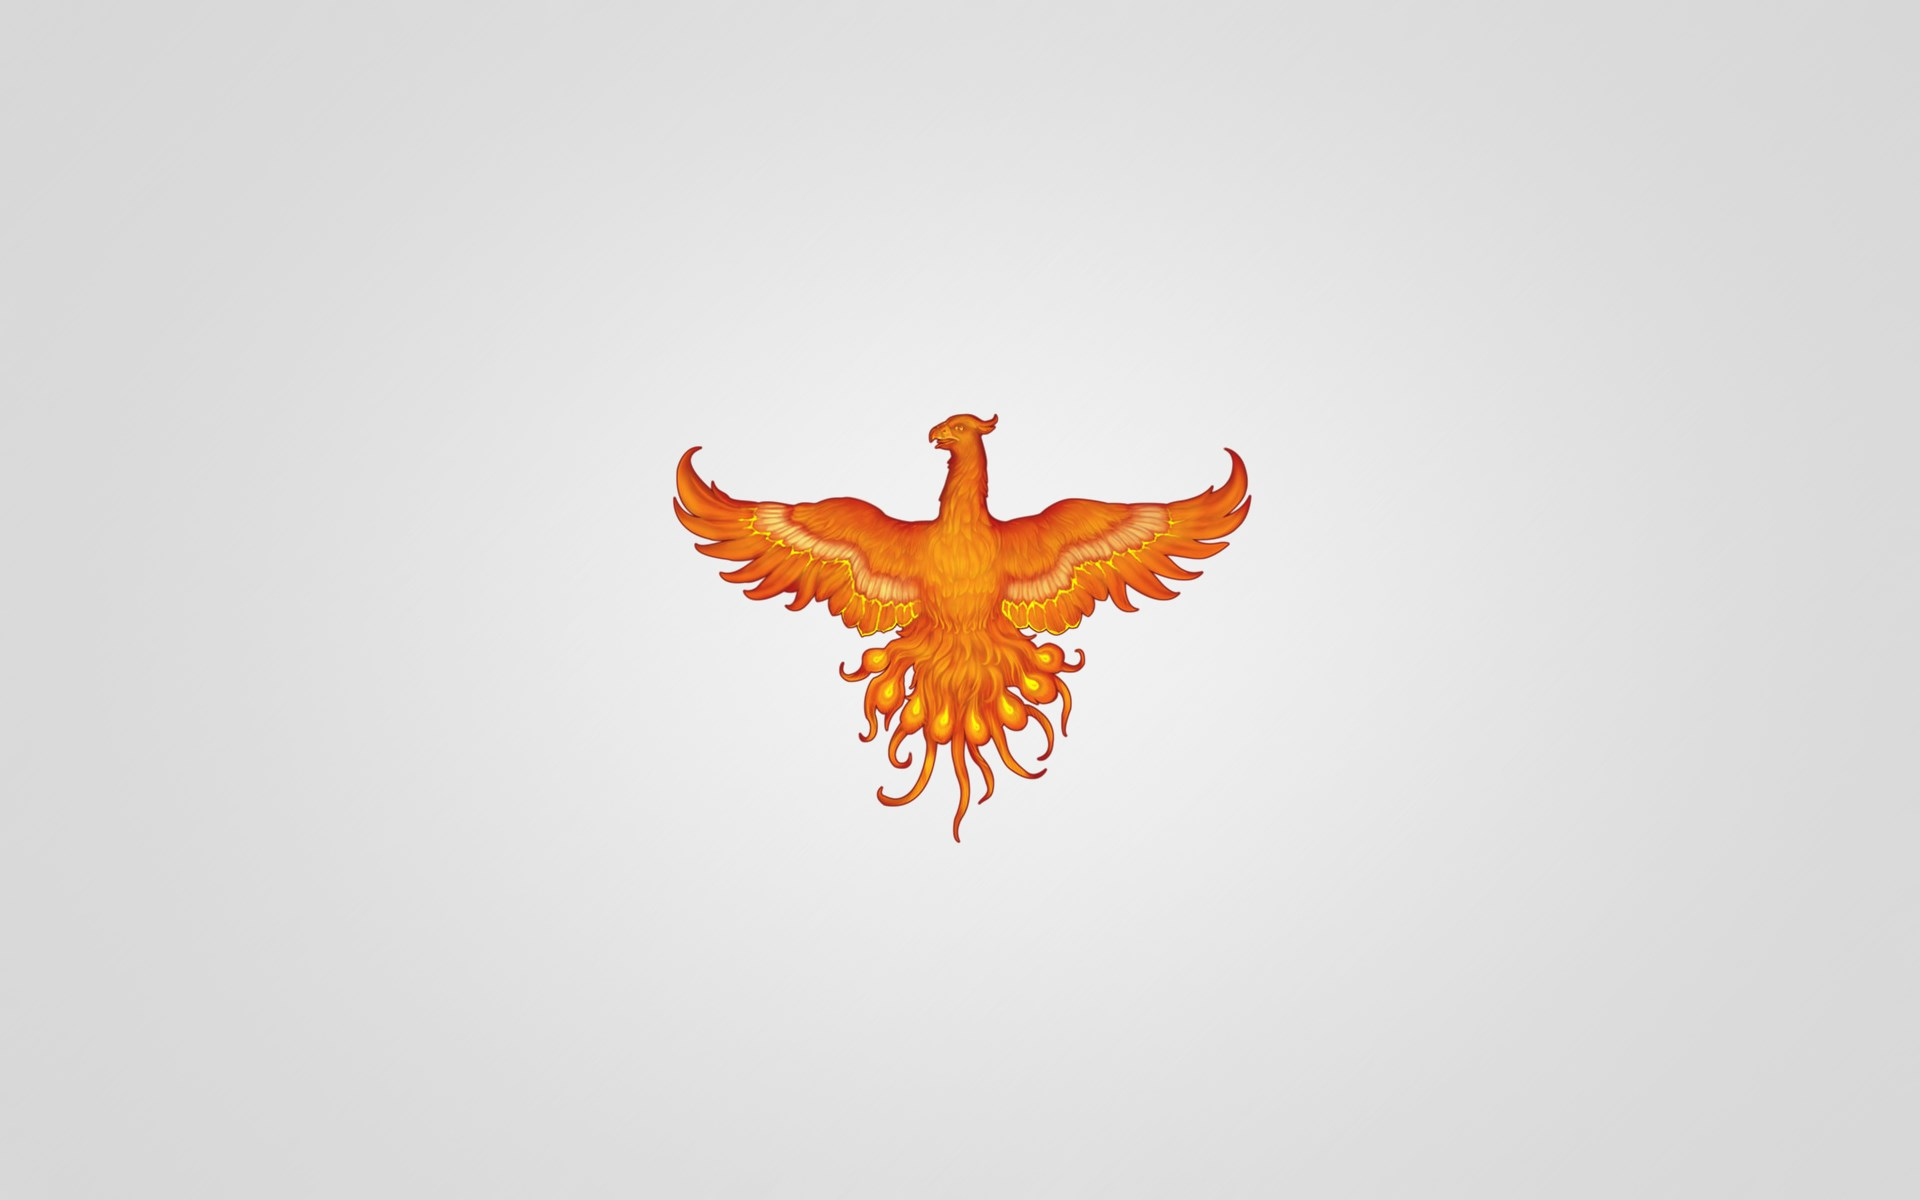 Phoenix bird hd wallpaper wallpapersafari for Minimal art hd